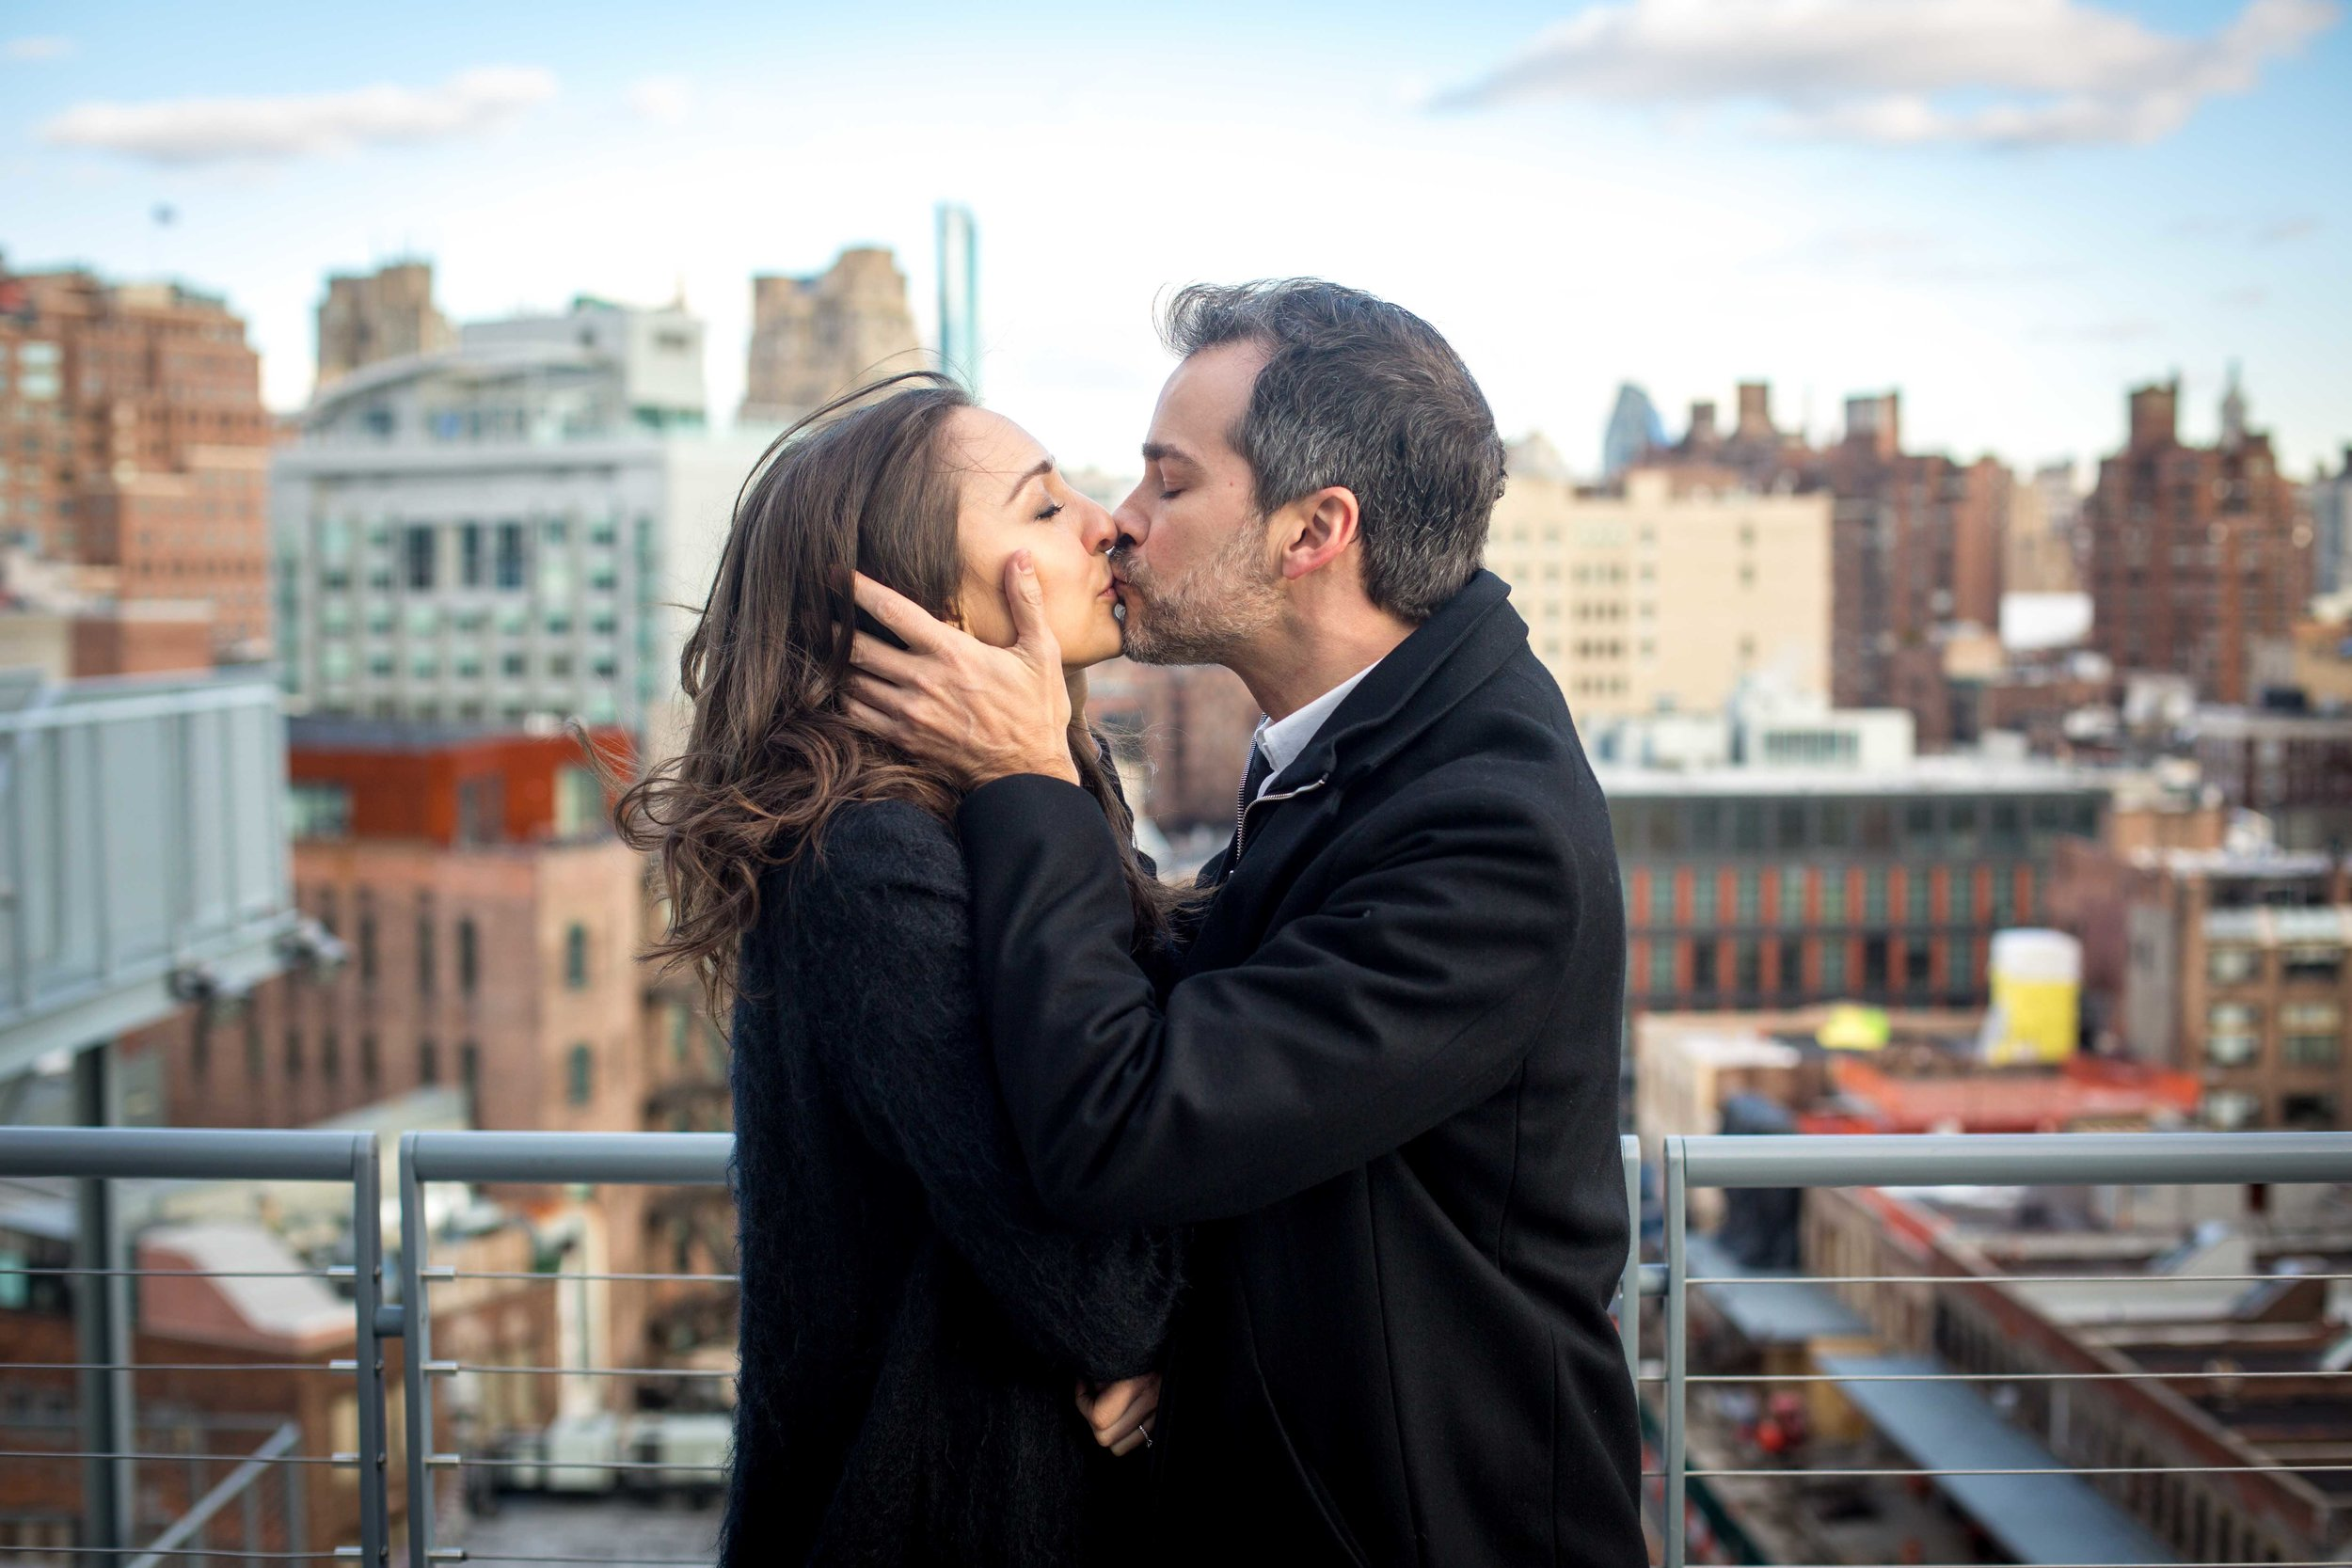 NYC Engagement Photo Shoot Session